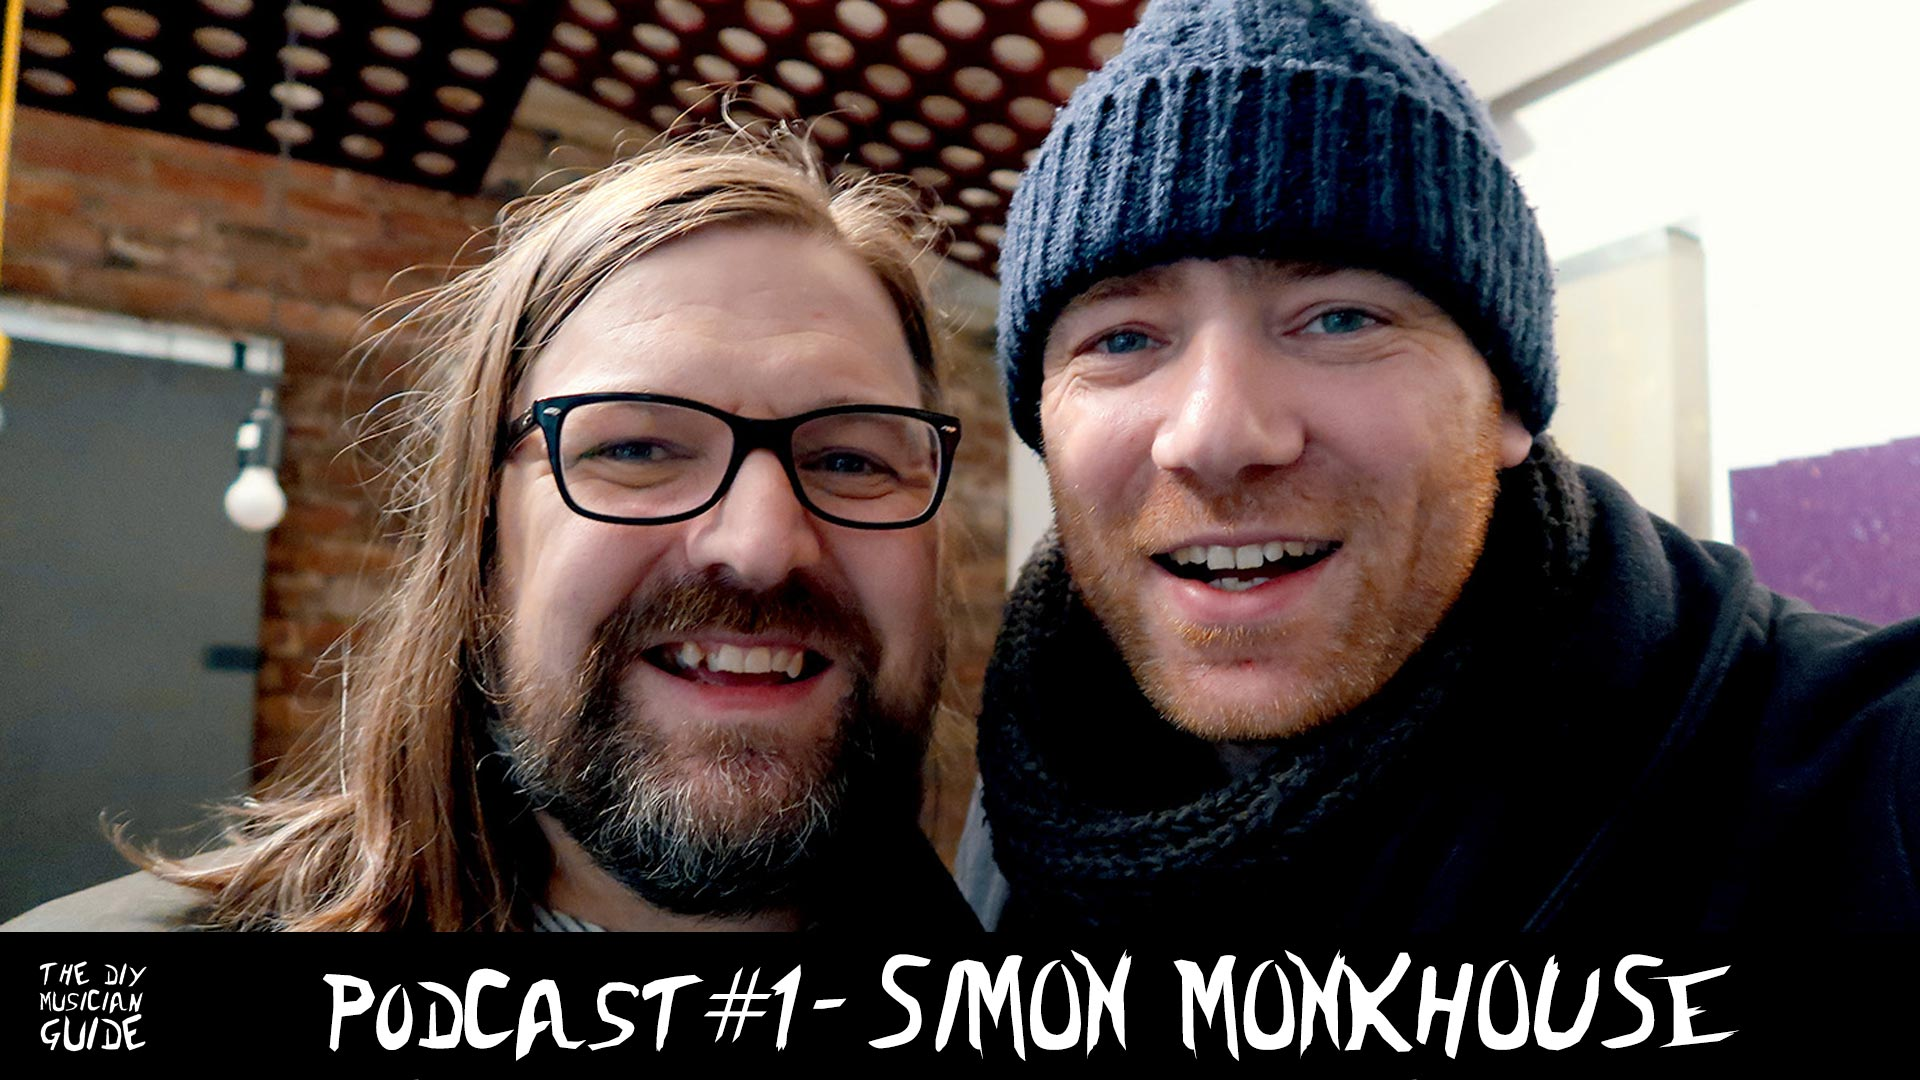 Simon Monkhouse | The DIY Musician Guide Podcast #1